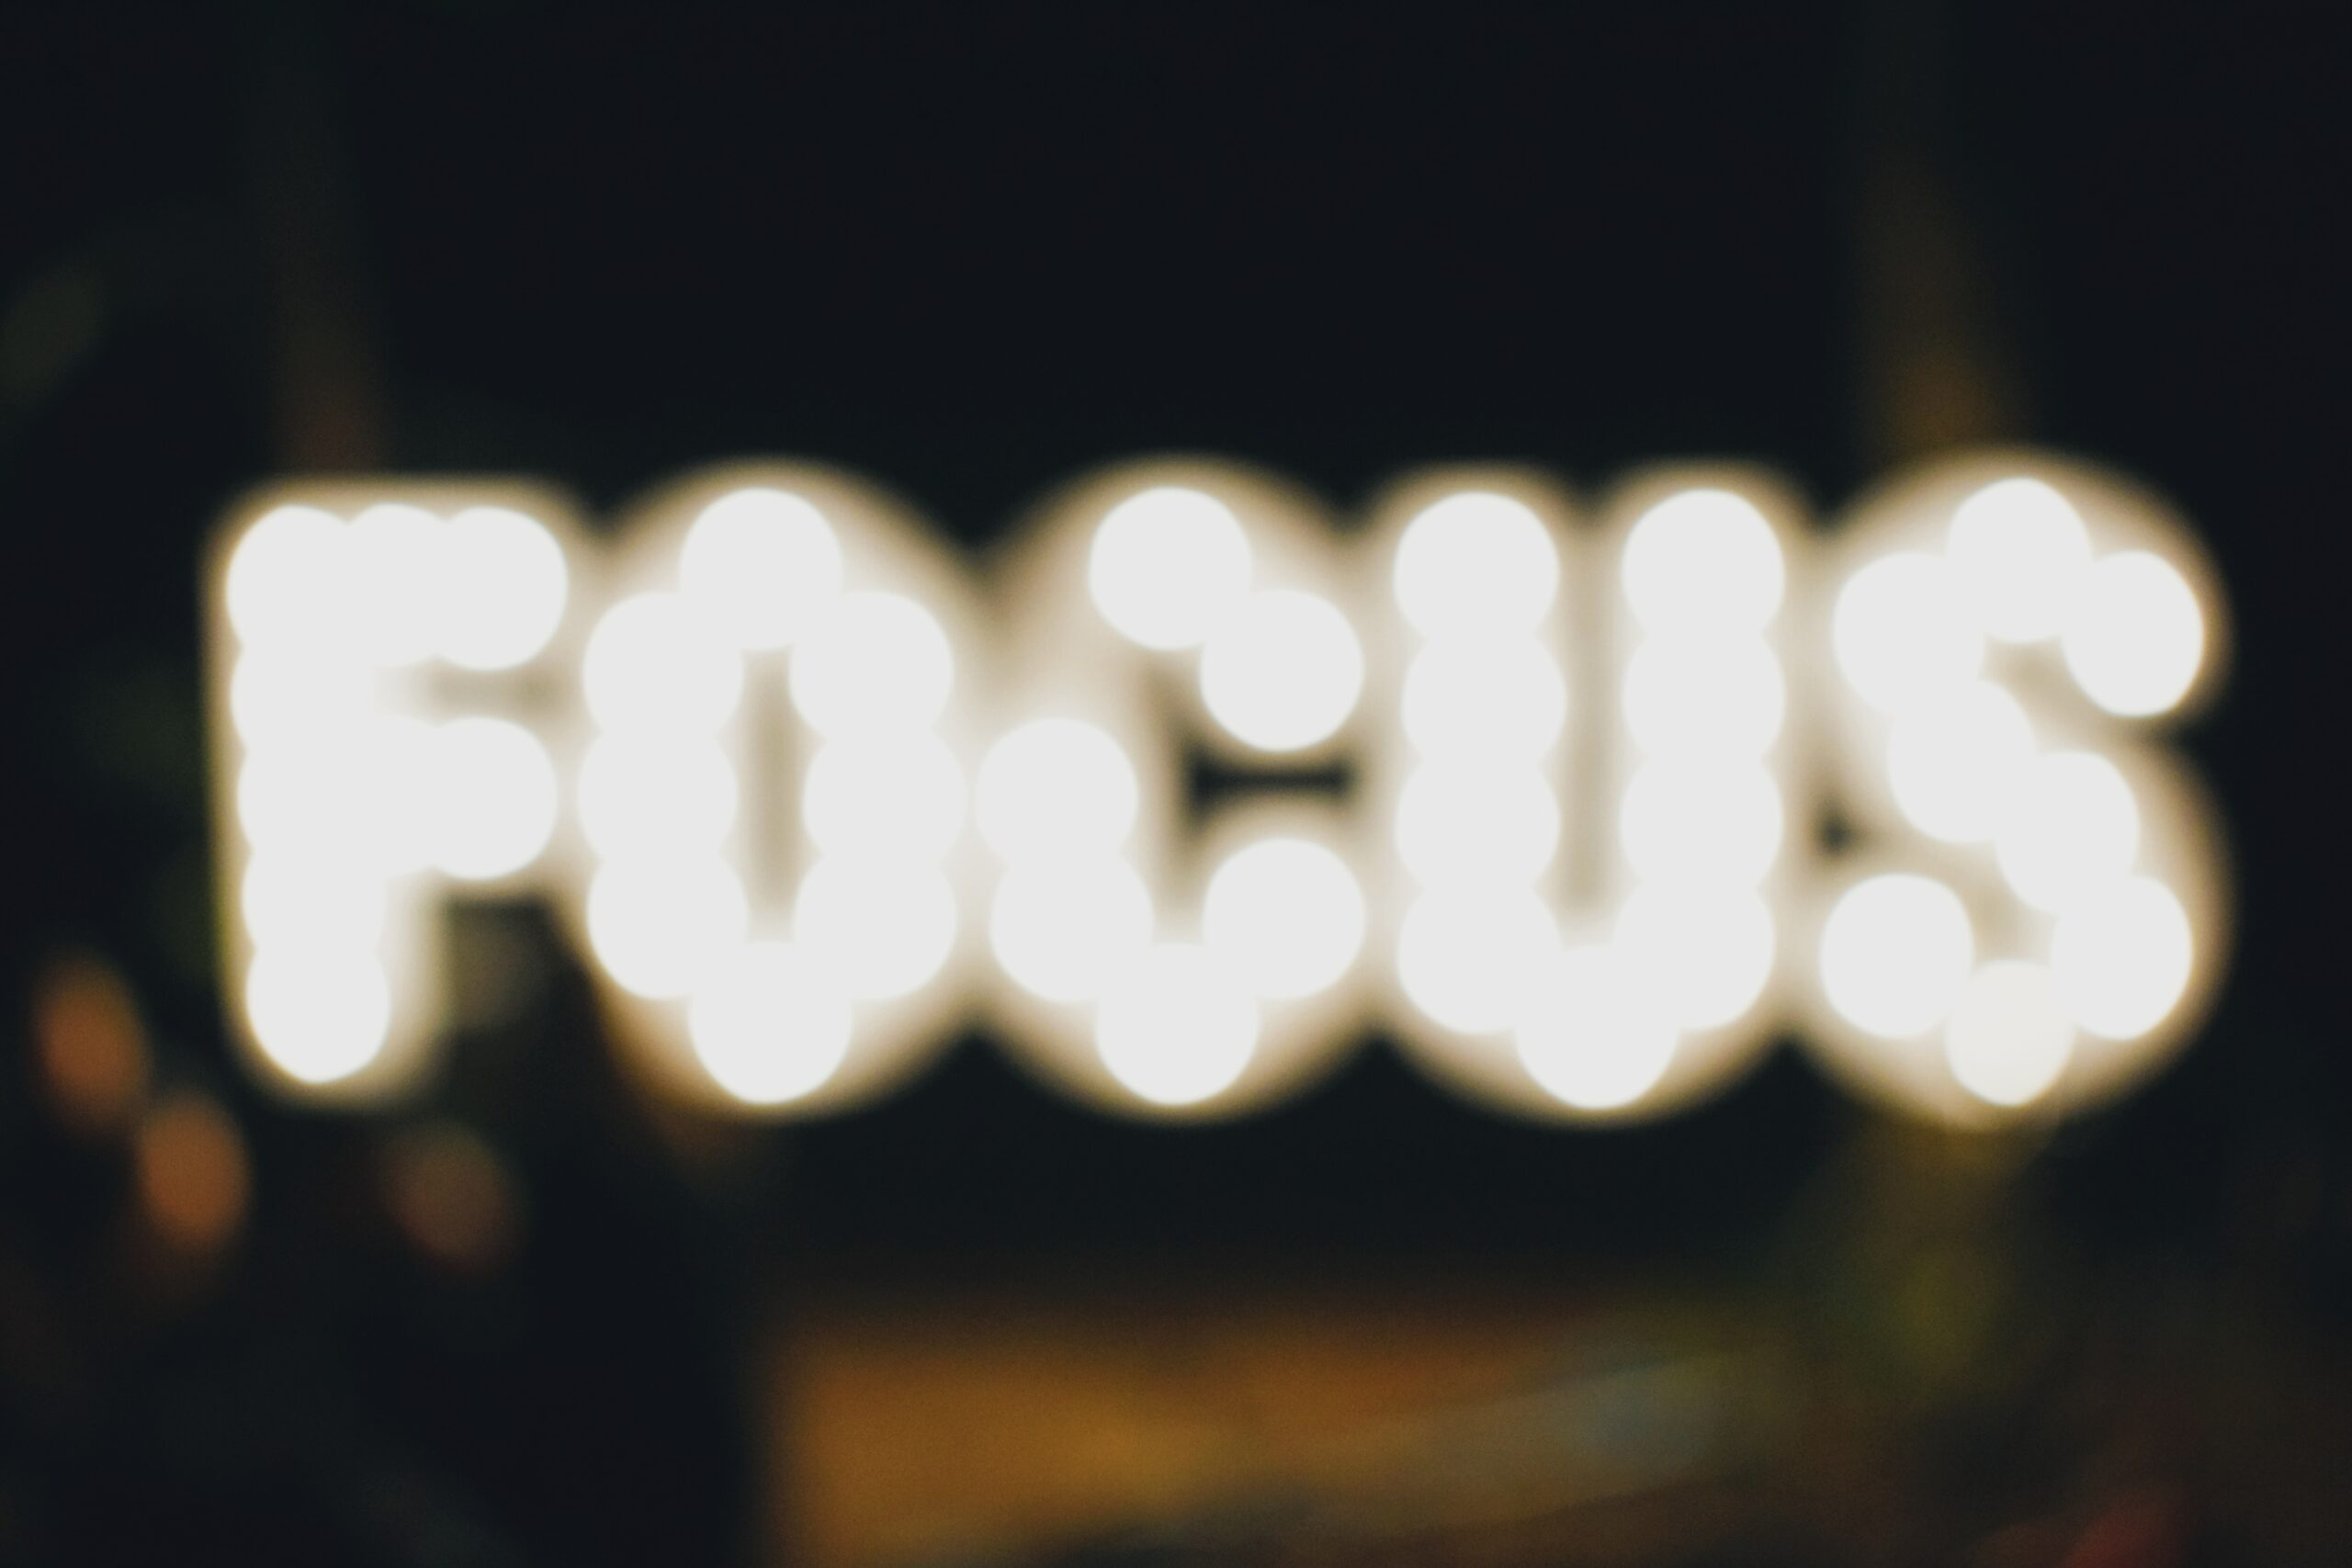 turned on Focus signage